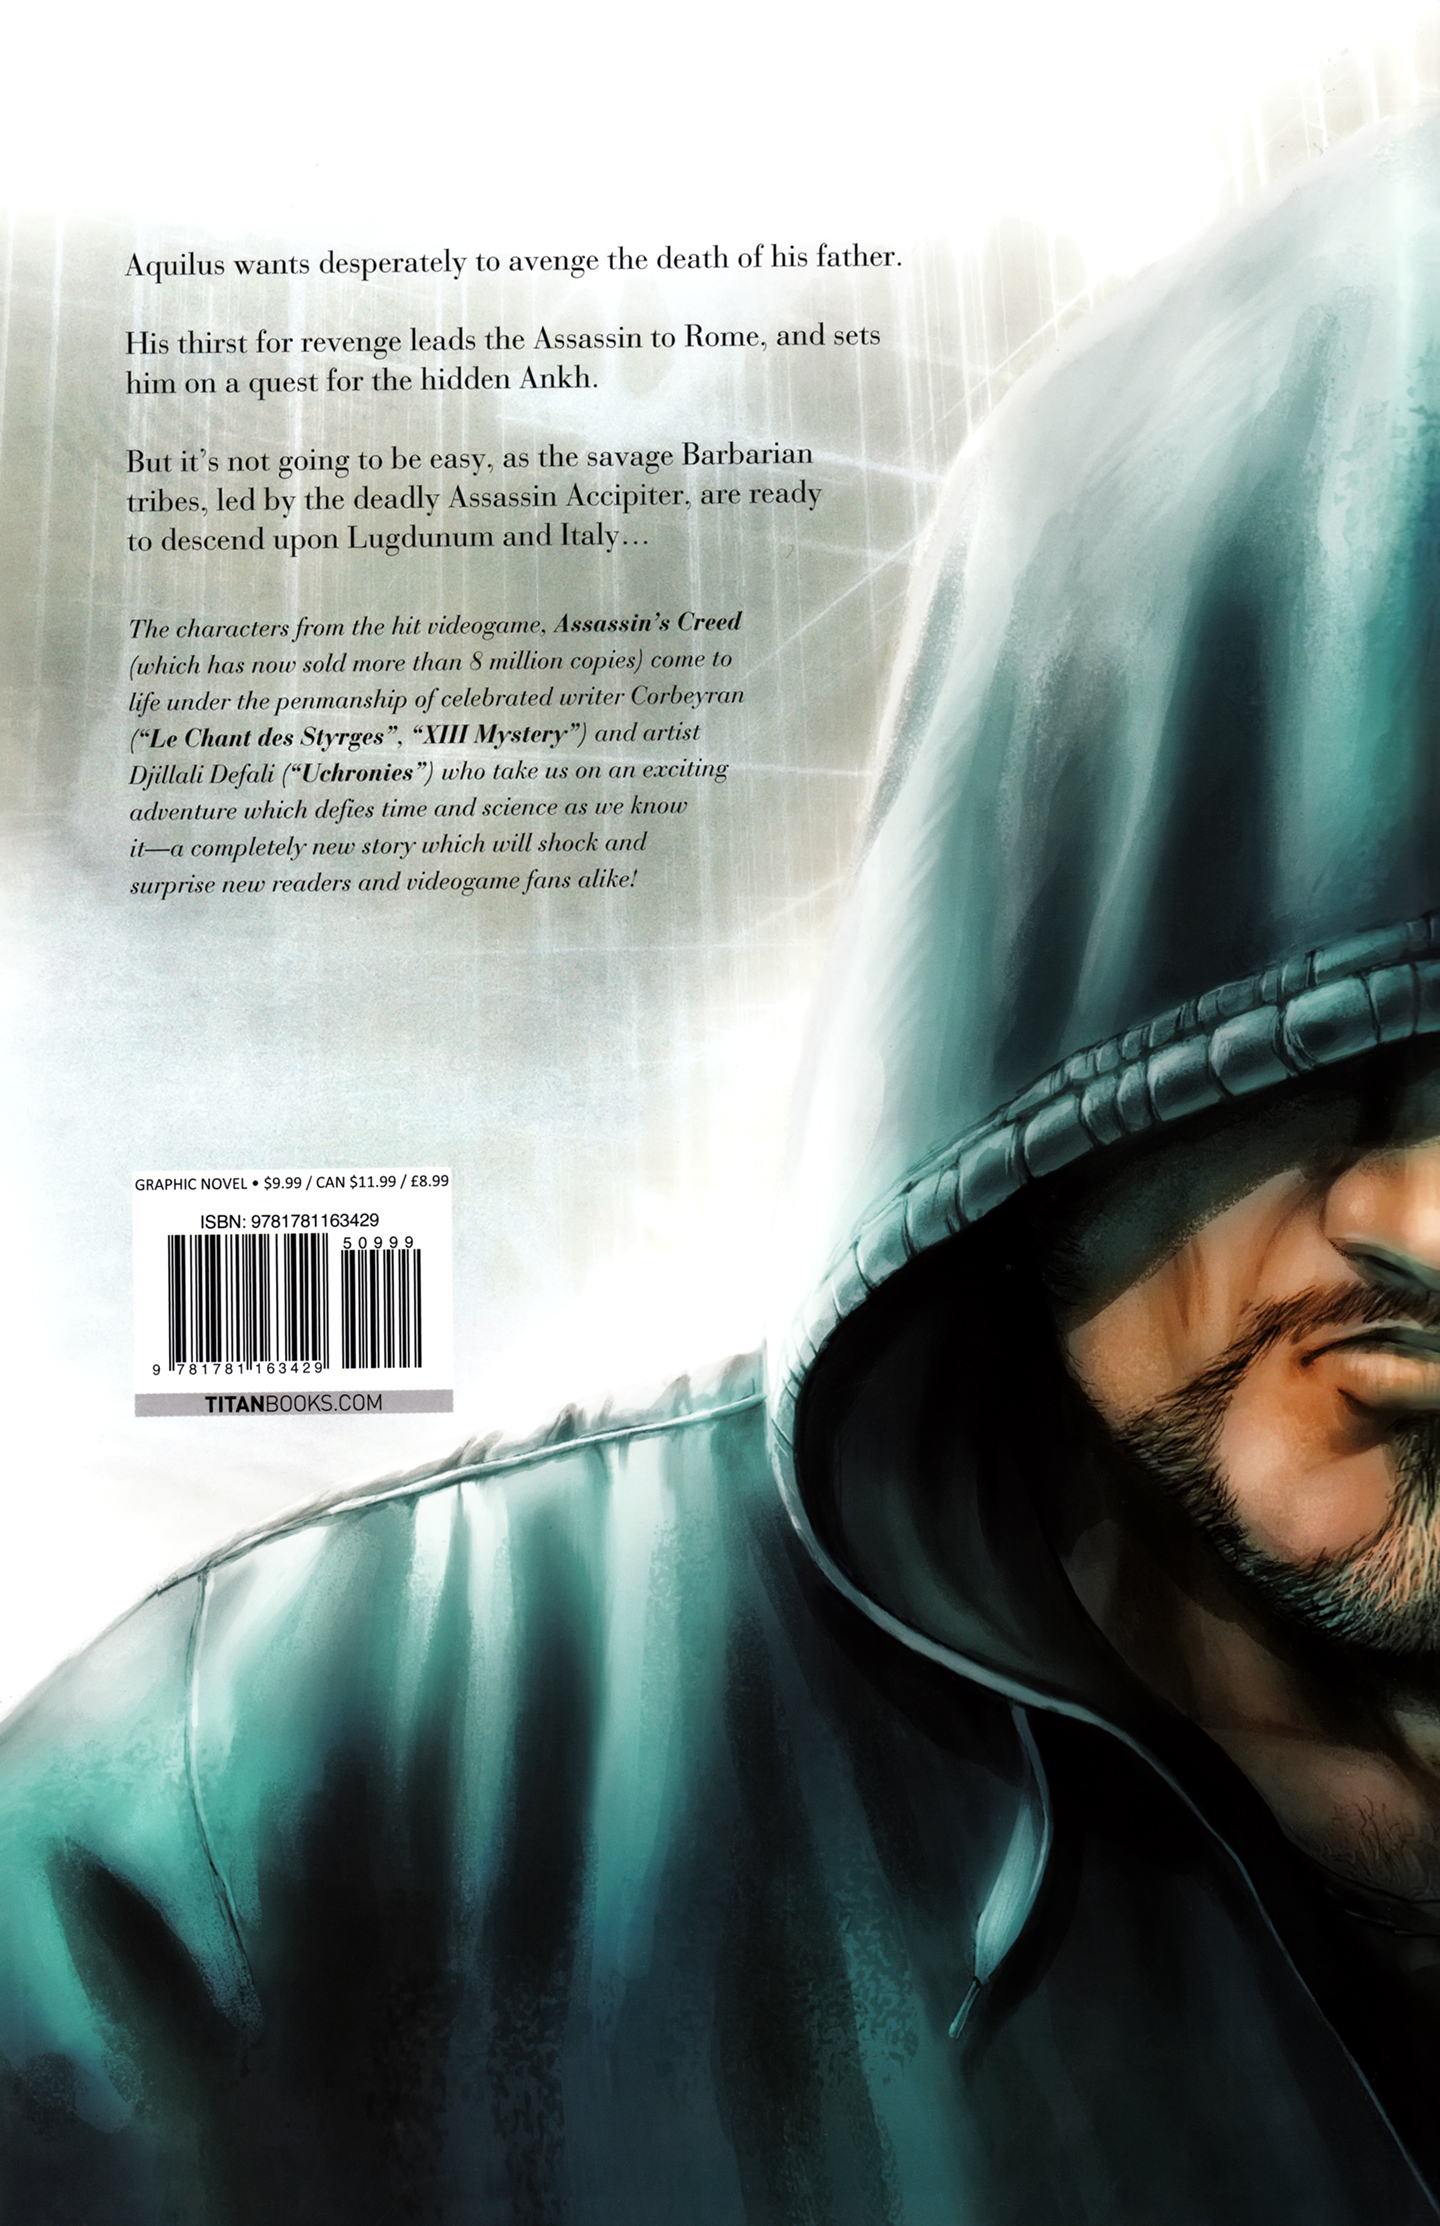 Read online Assassin's Creed (2012) comic -  Issue #3 - 56